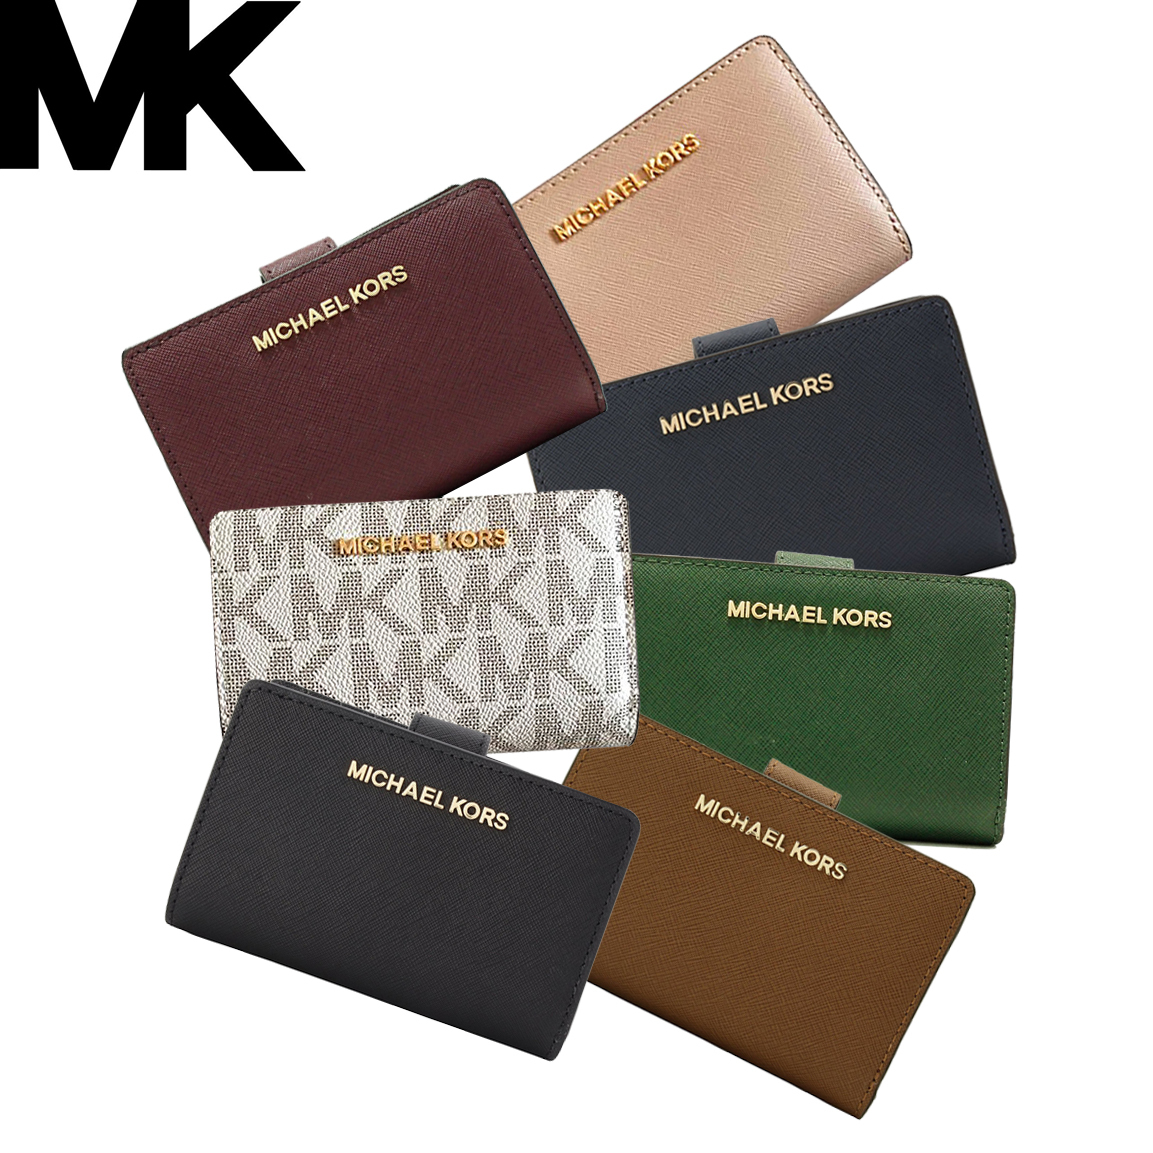 b58d0f4a5d32 Details about NWT MICHAEL Michael Kors Jet Set Bifold Zip Coin Wallet  35F7GTVF2L/35F7GTVF2B